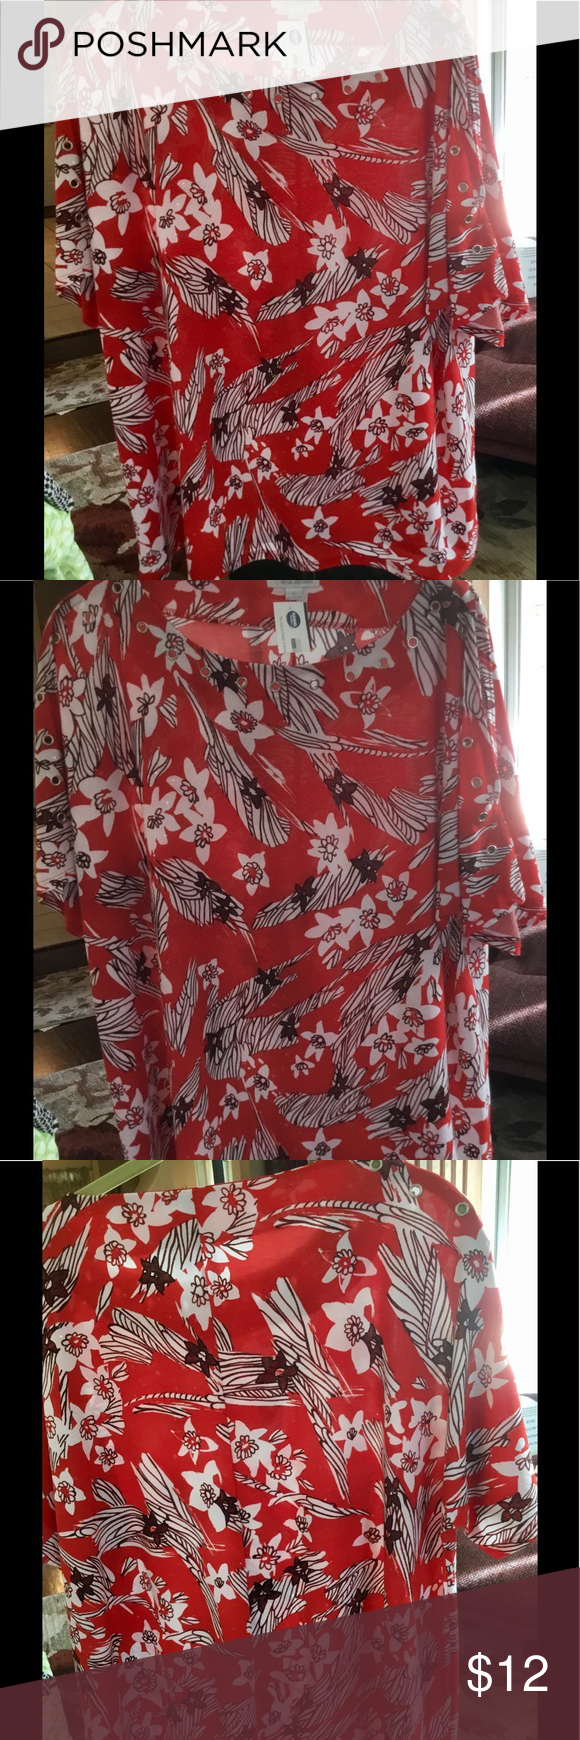 Fabulous in red Red floral shirt. Scoop neck with grommet on neckline and sleeves Erin London Tops Blouses